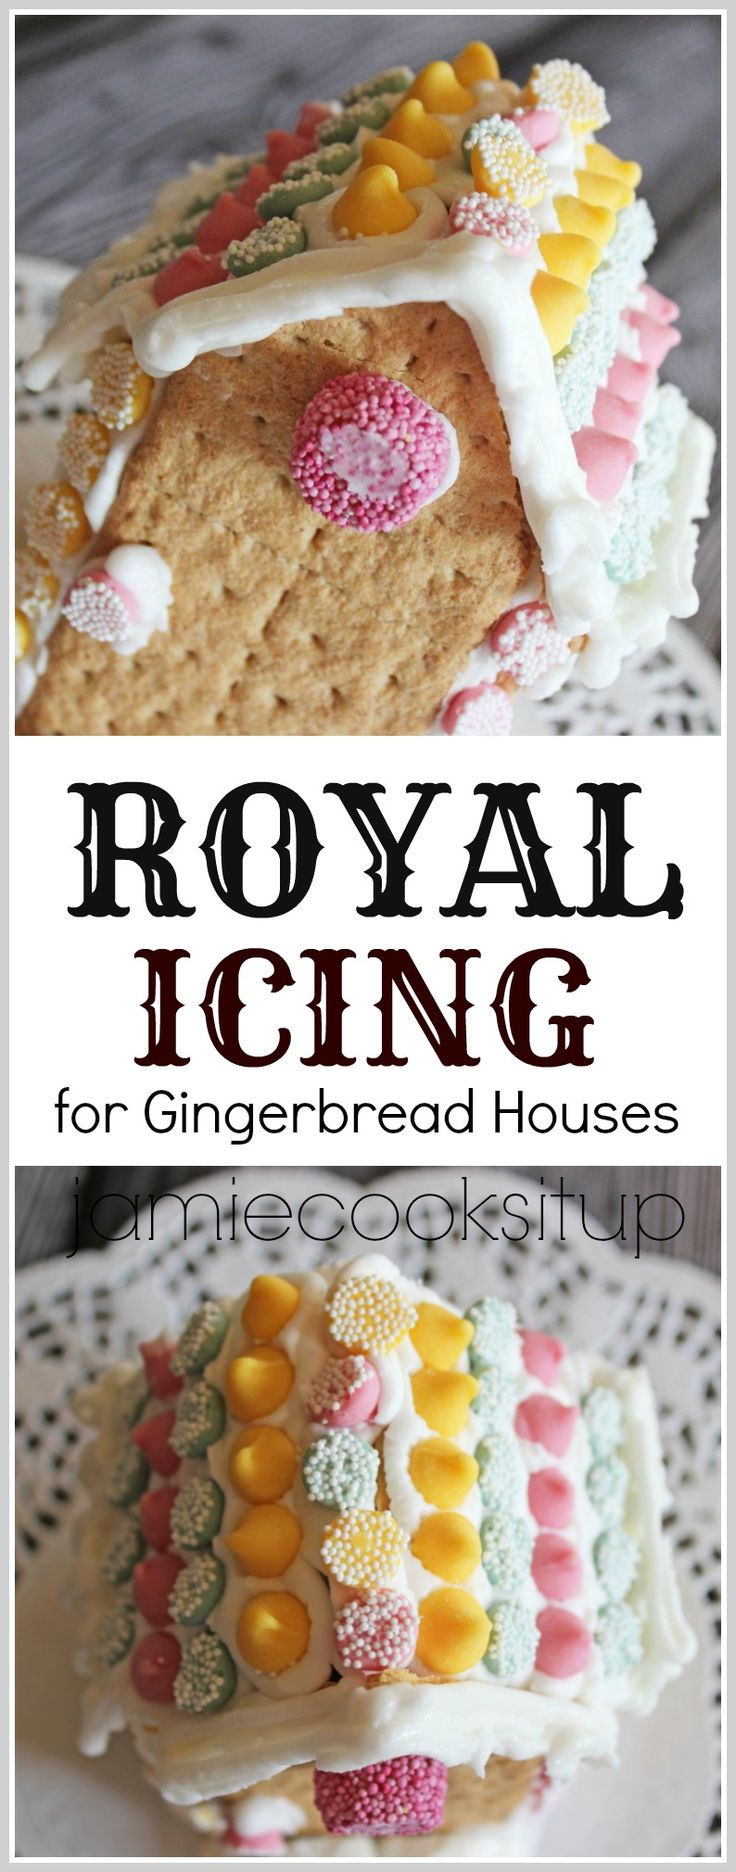 Royal icing for gingerbread houses -egg whites, icing sugar, cream of tartar